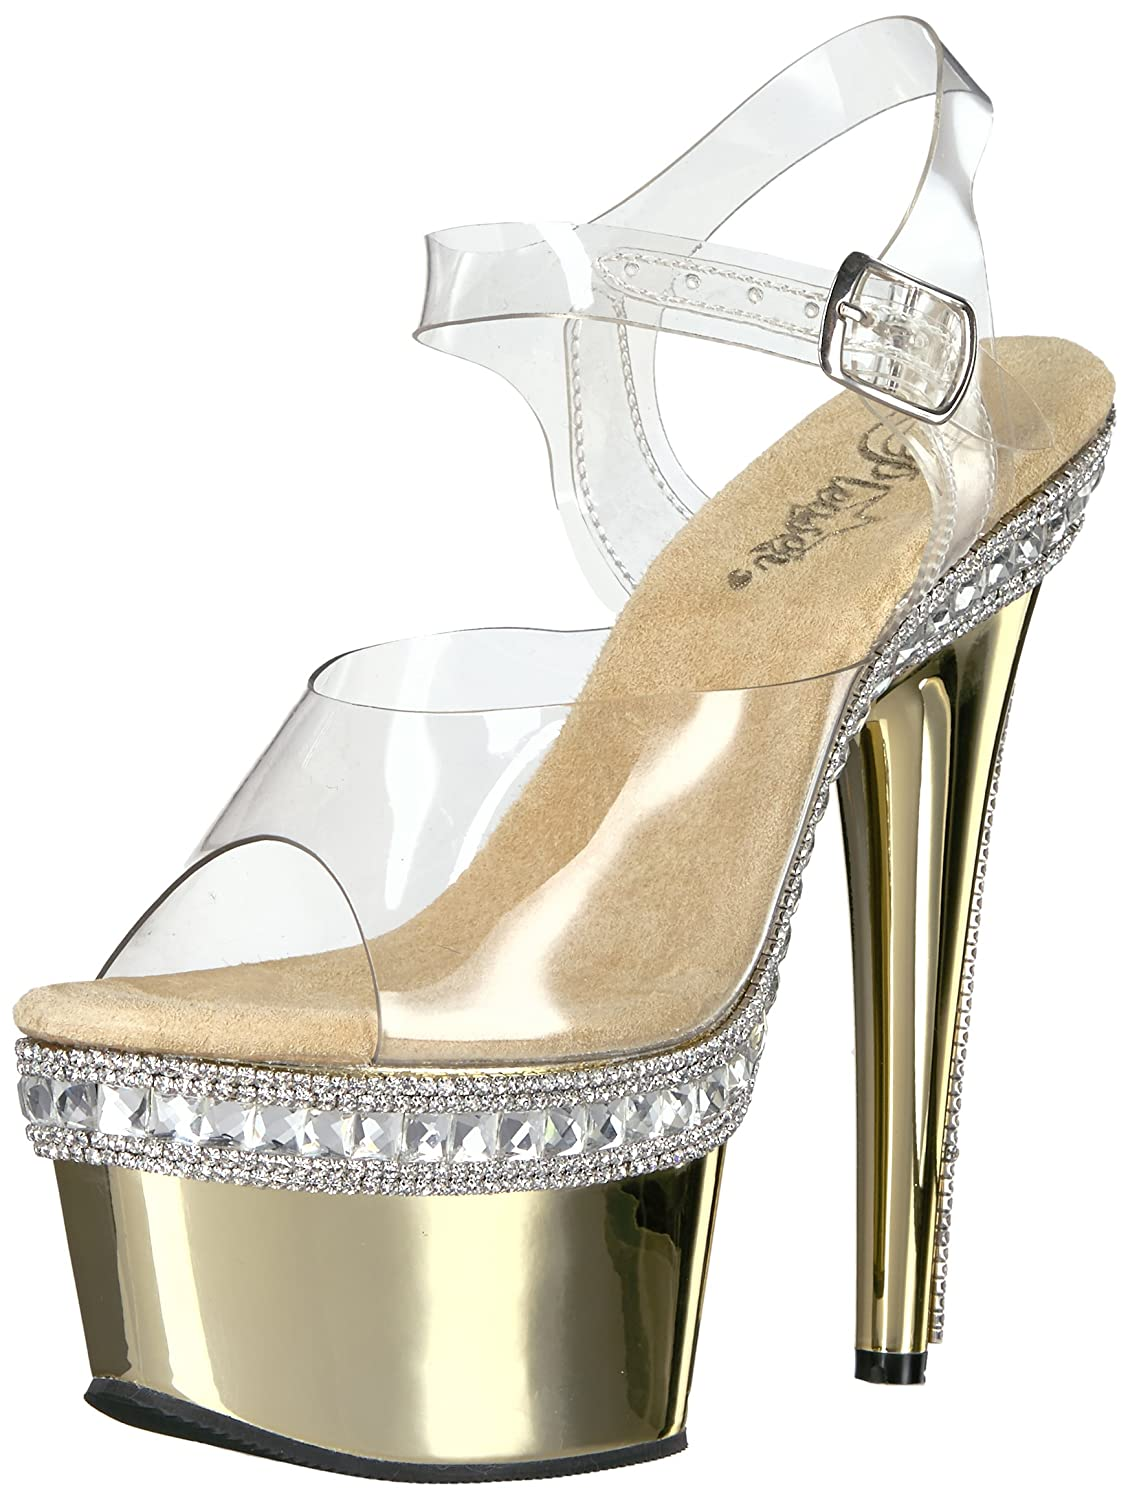 Pleaser Women's Ado708rs-1/C/Gch Platform Sandal B01ABTC49E 6 B(M) US|Clr/Gold Chrome